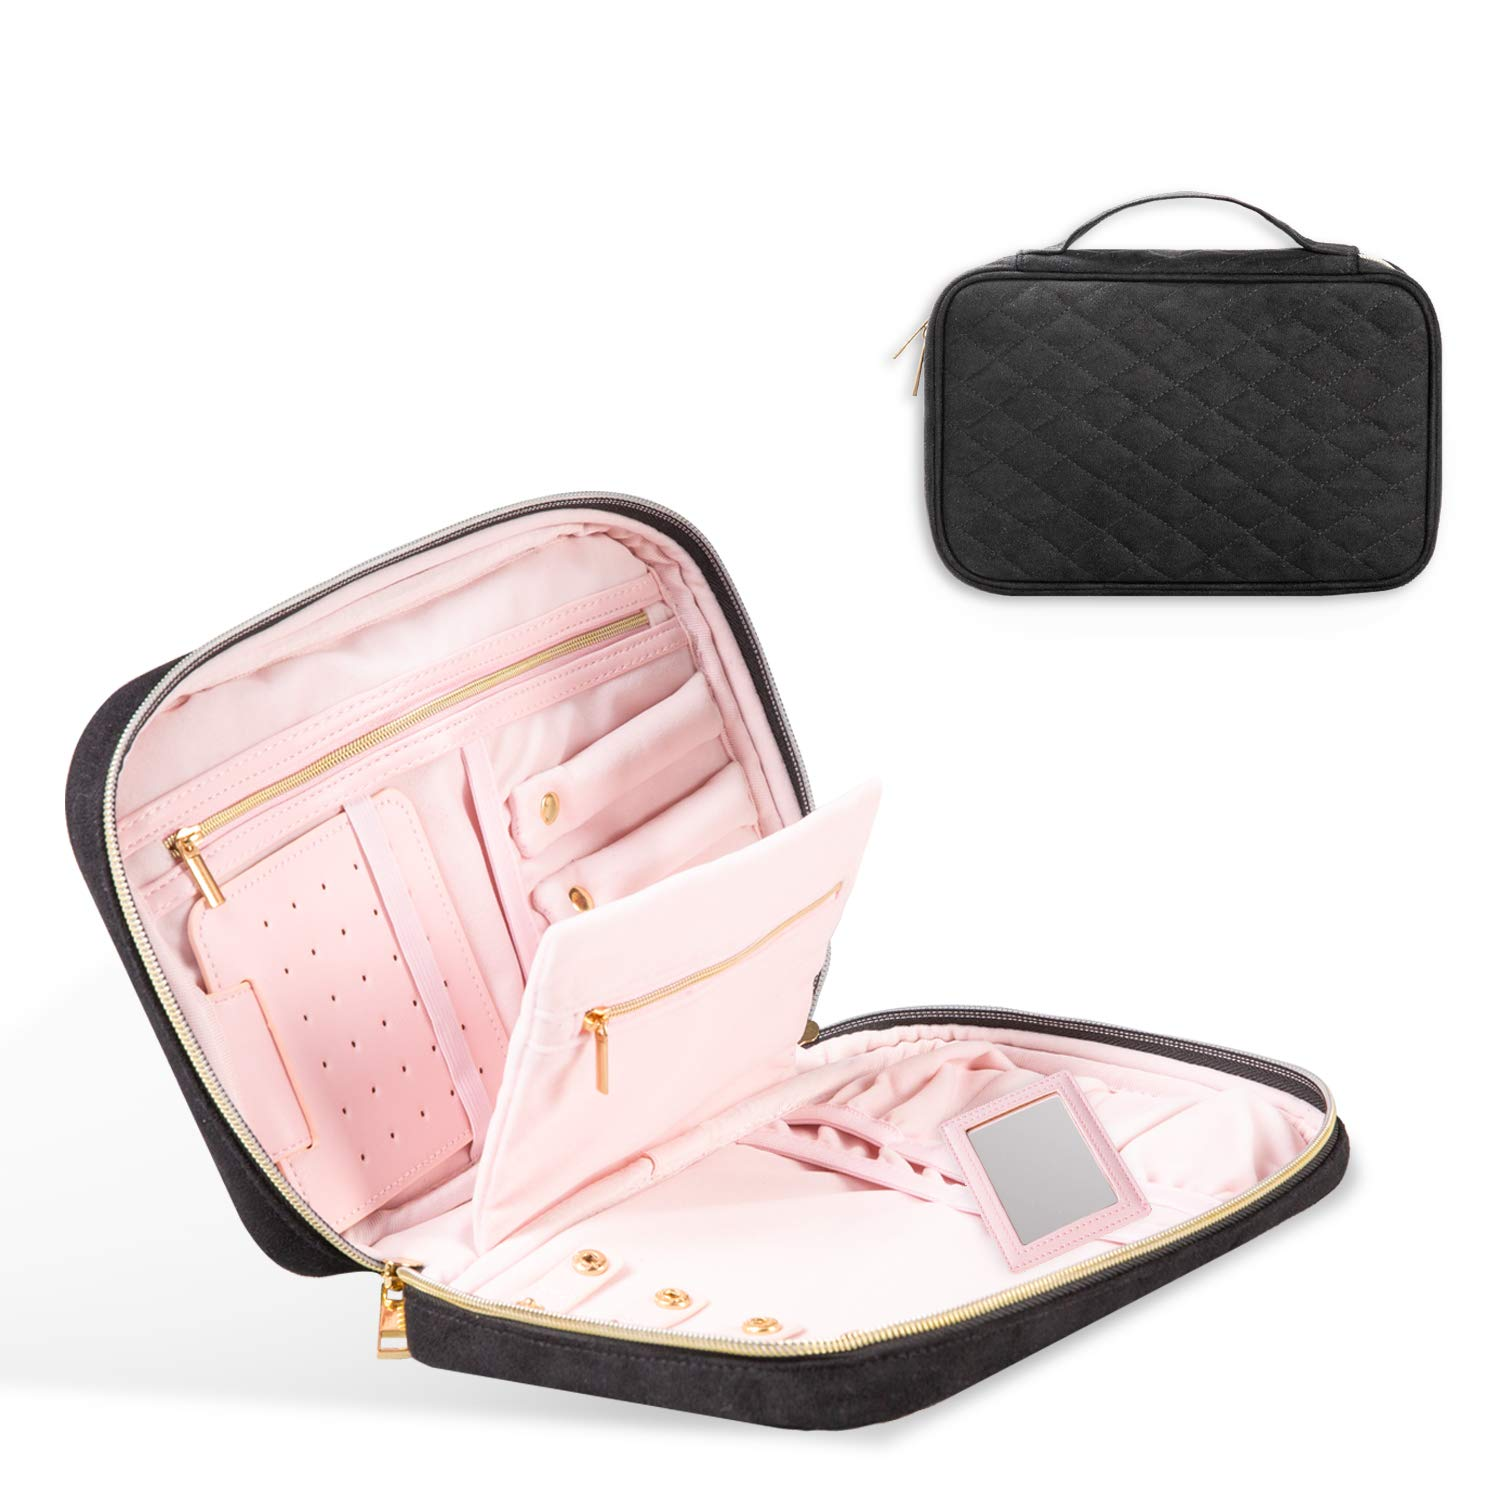 OTBHome Travel Jewelry Organizer Jewelry Travel Case for Women Girls Quilted Compact Jewelry Storage Bag for Earrings Necklaces Rings